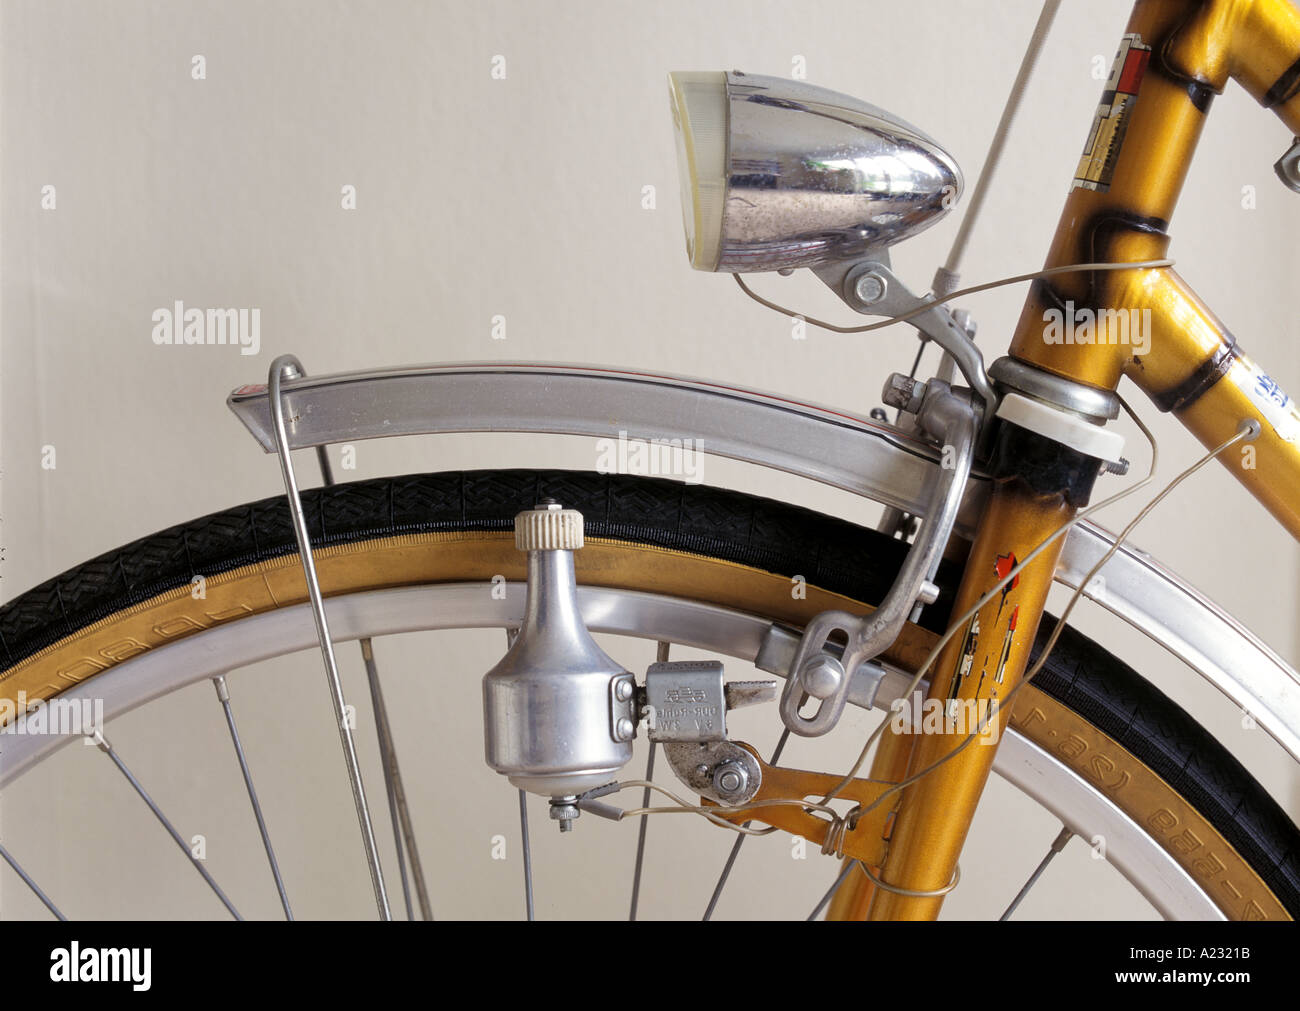 a bicycle dynamo on a bicycle - Stock Image